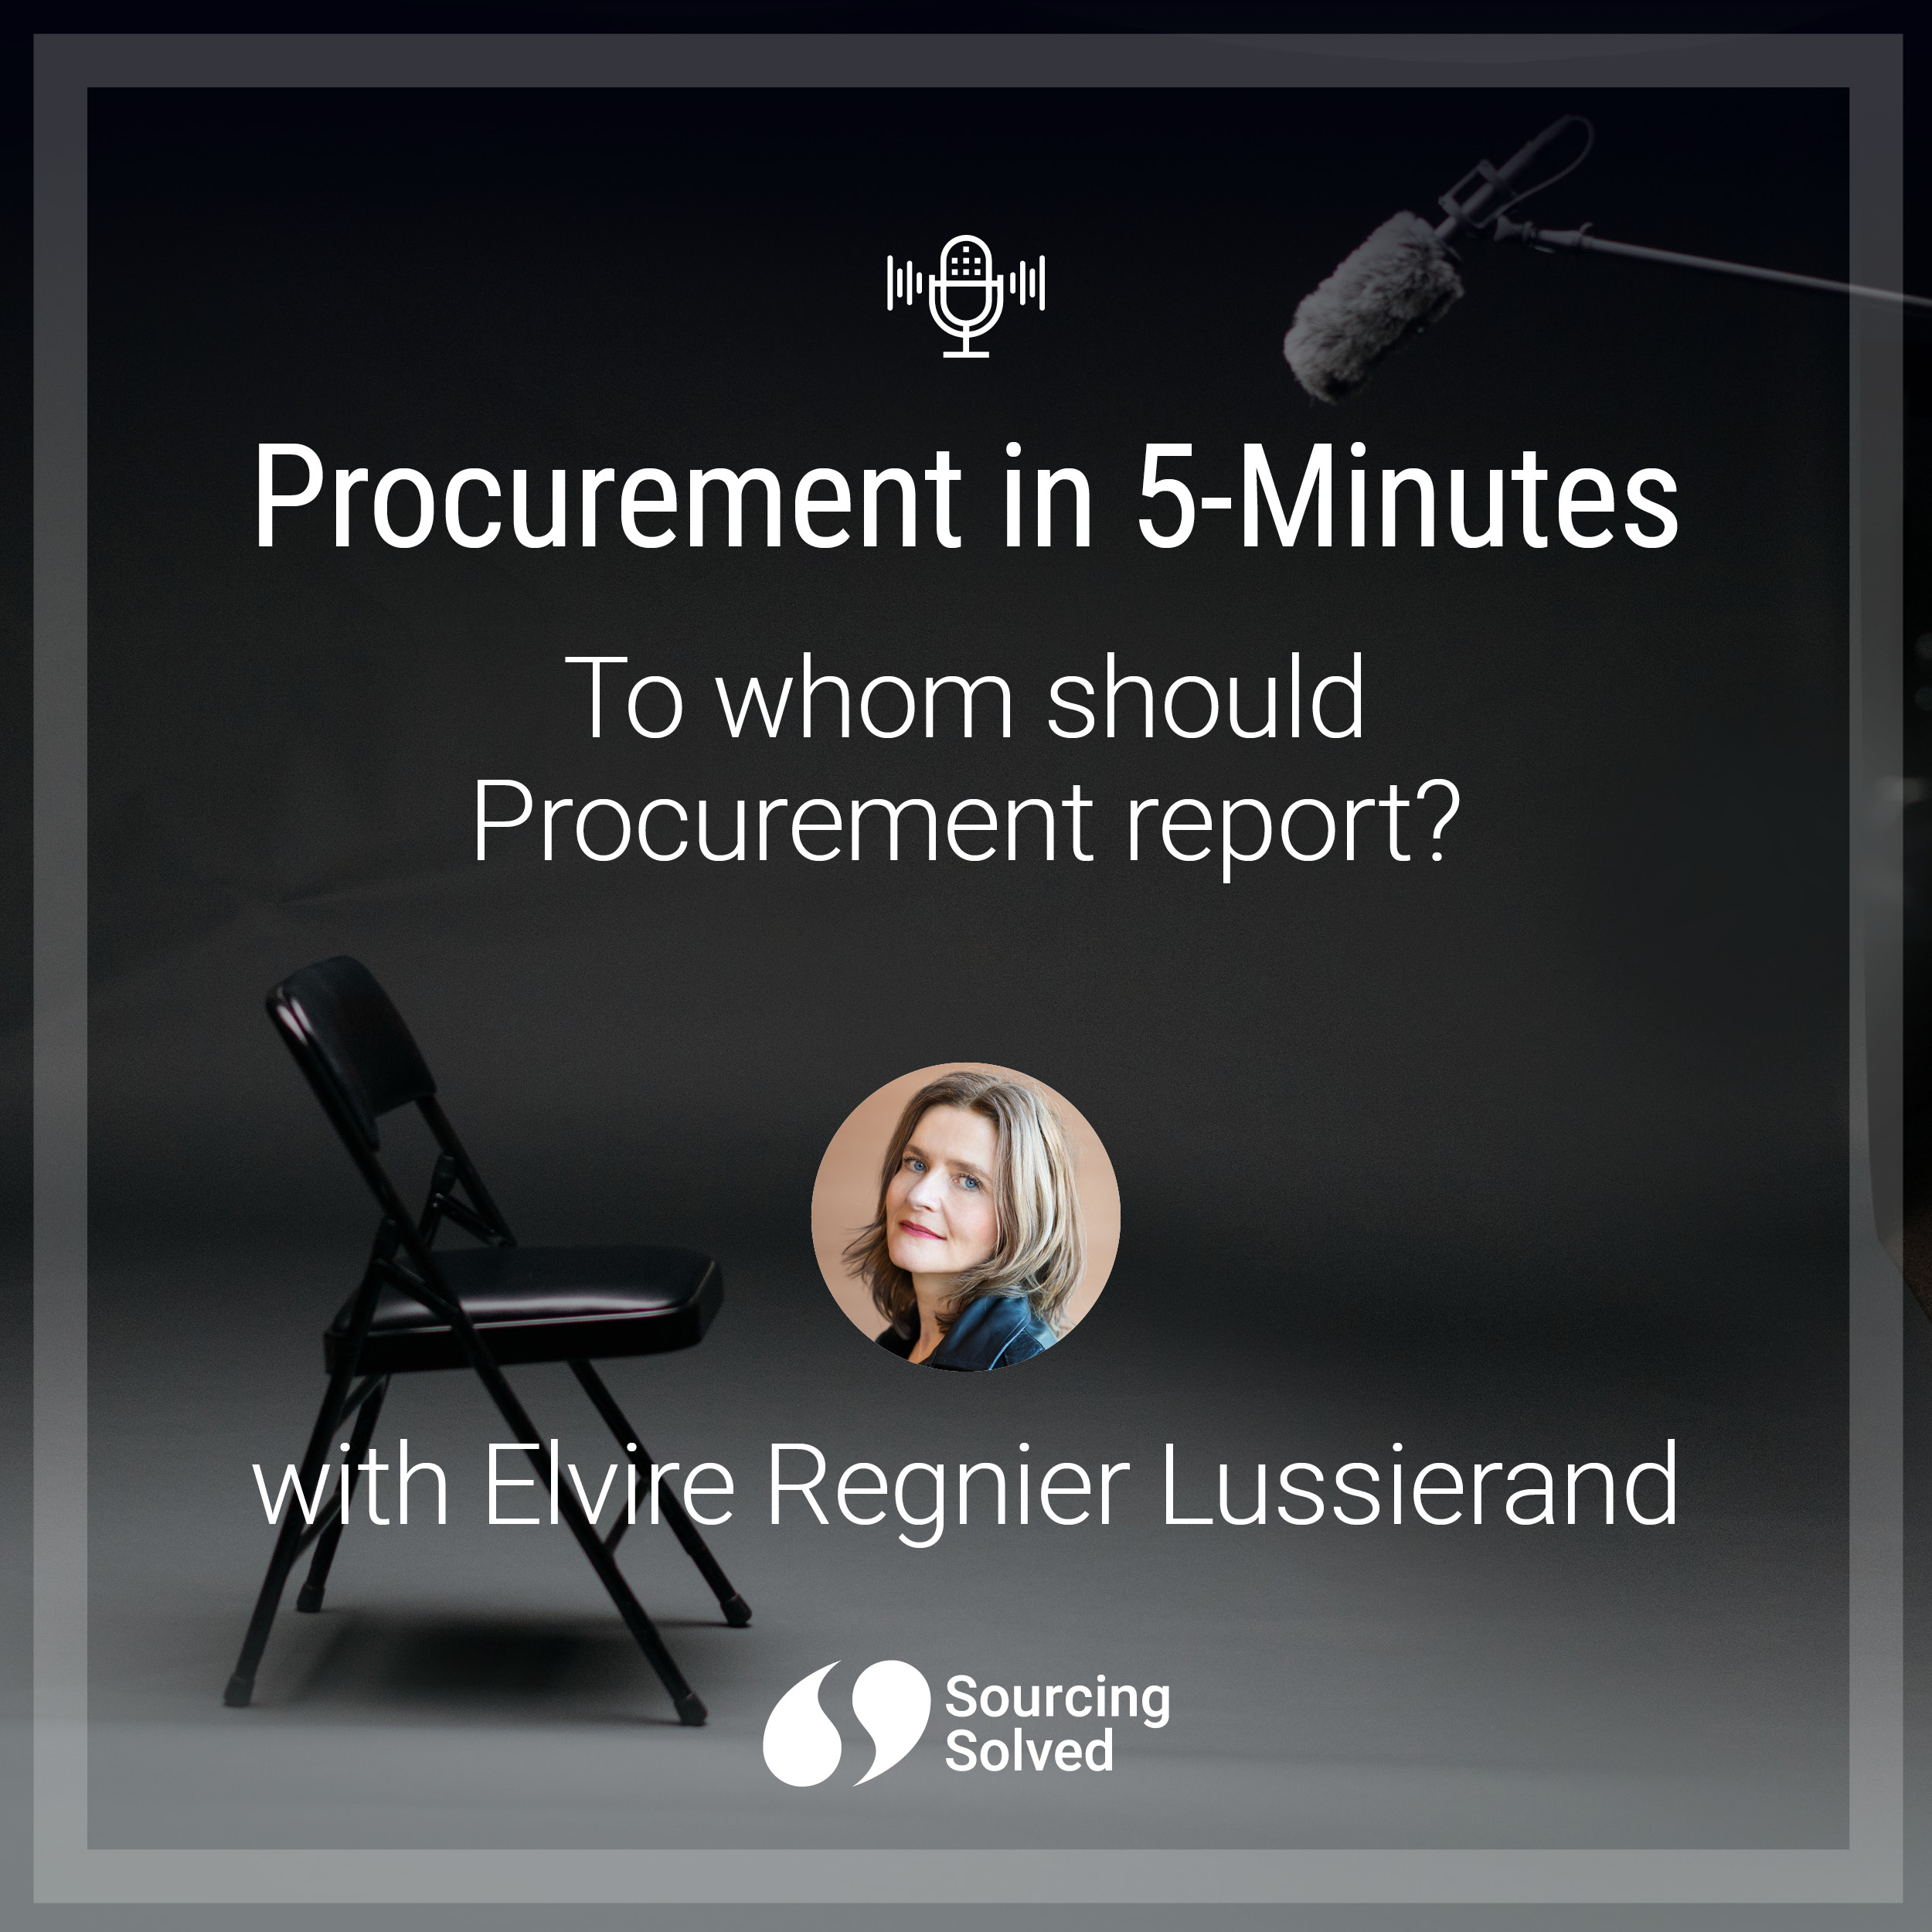 Procurement in 5-Minutes: To whom should Procurement report?